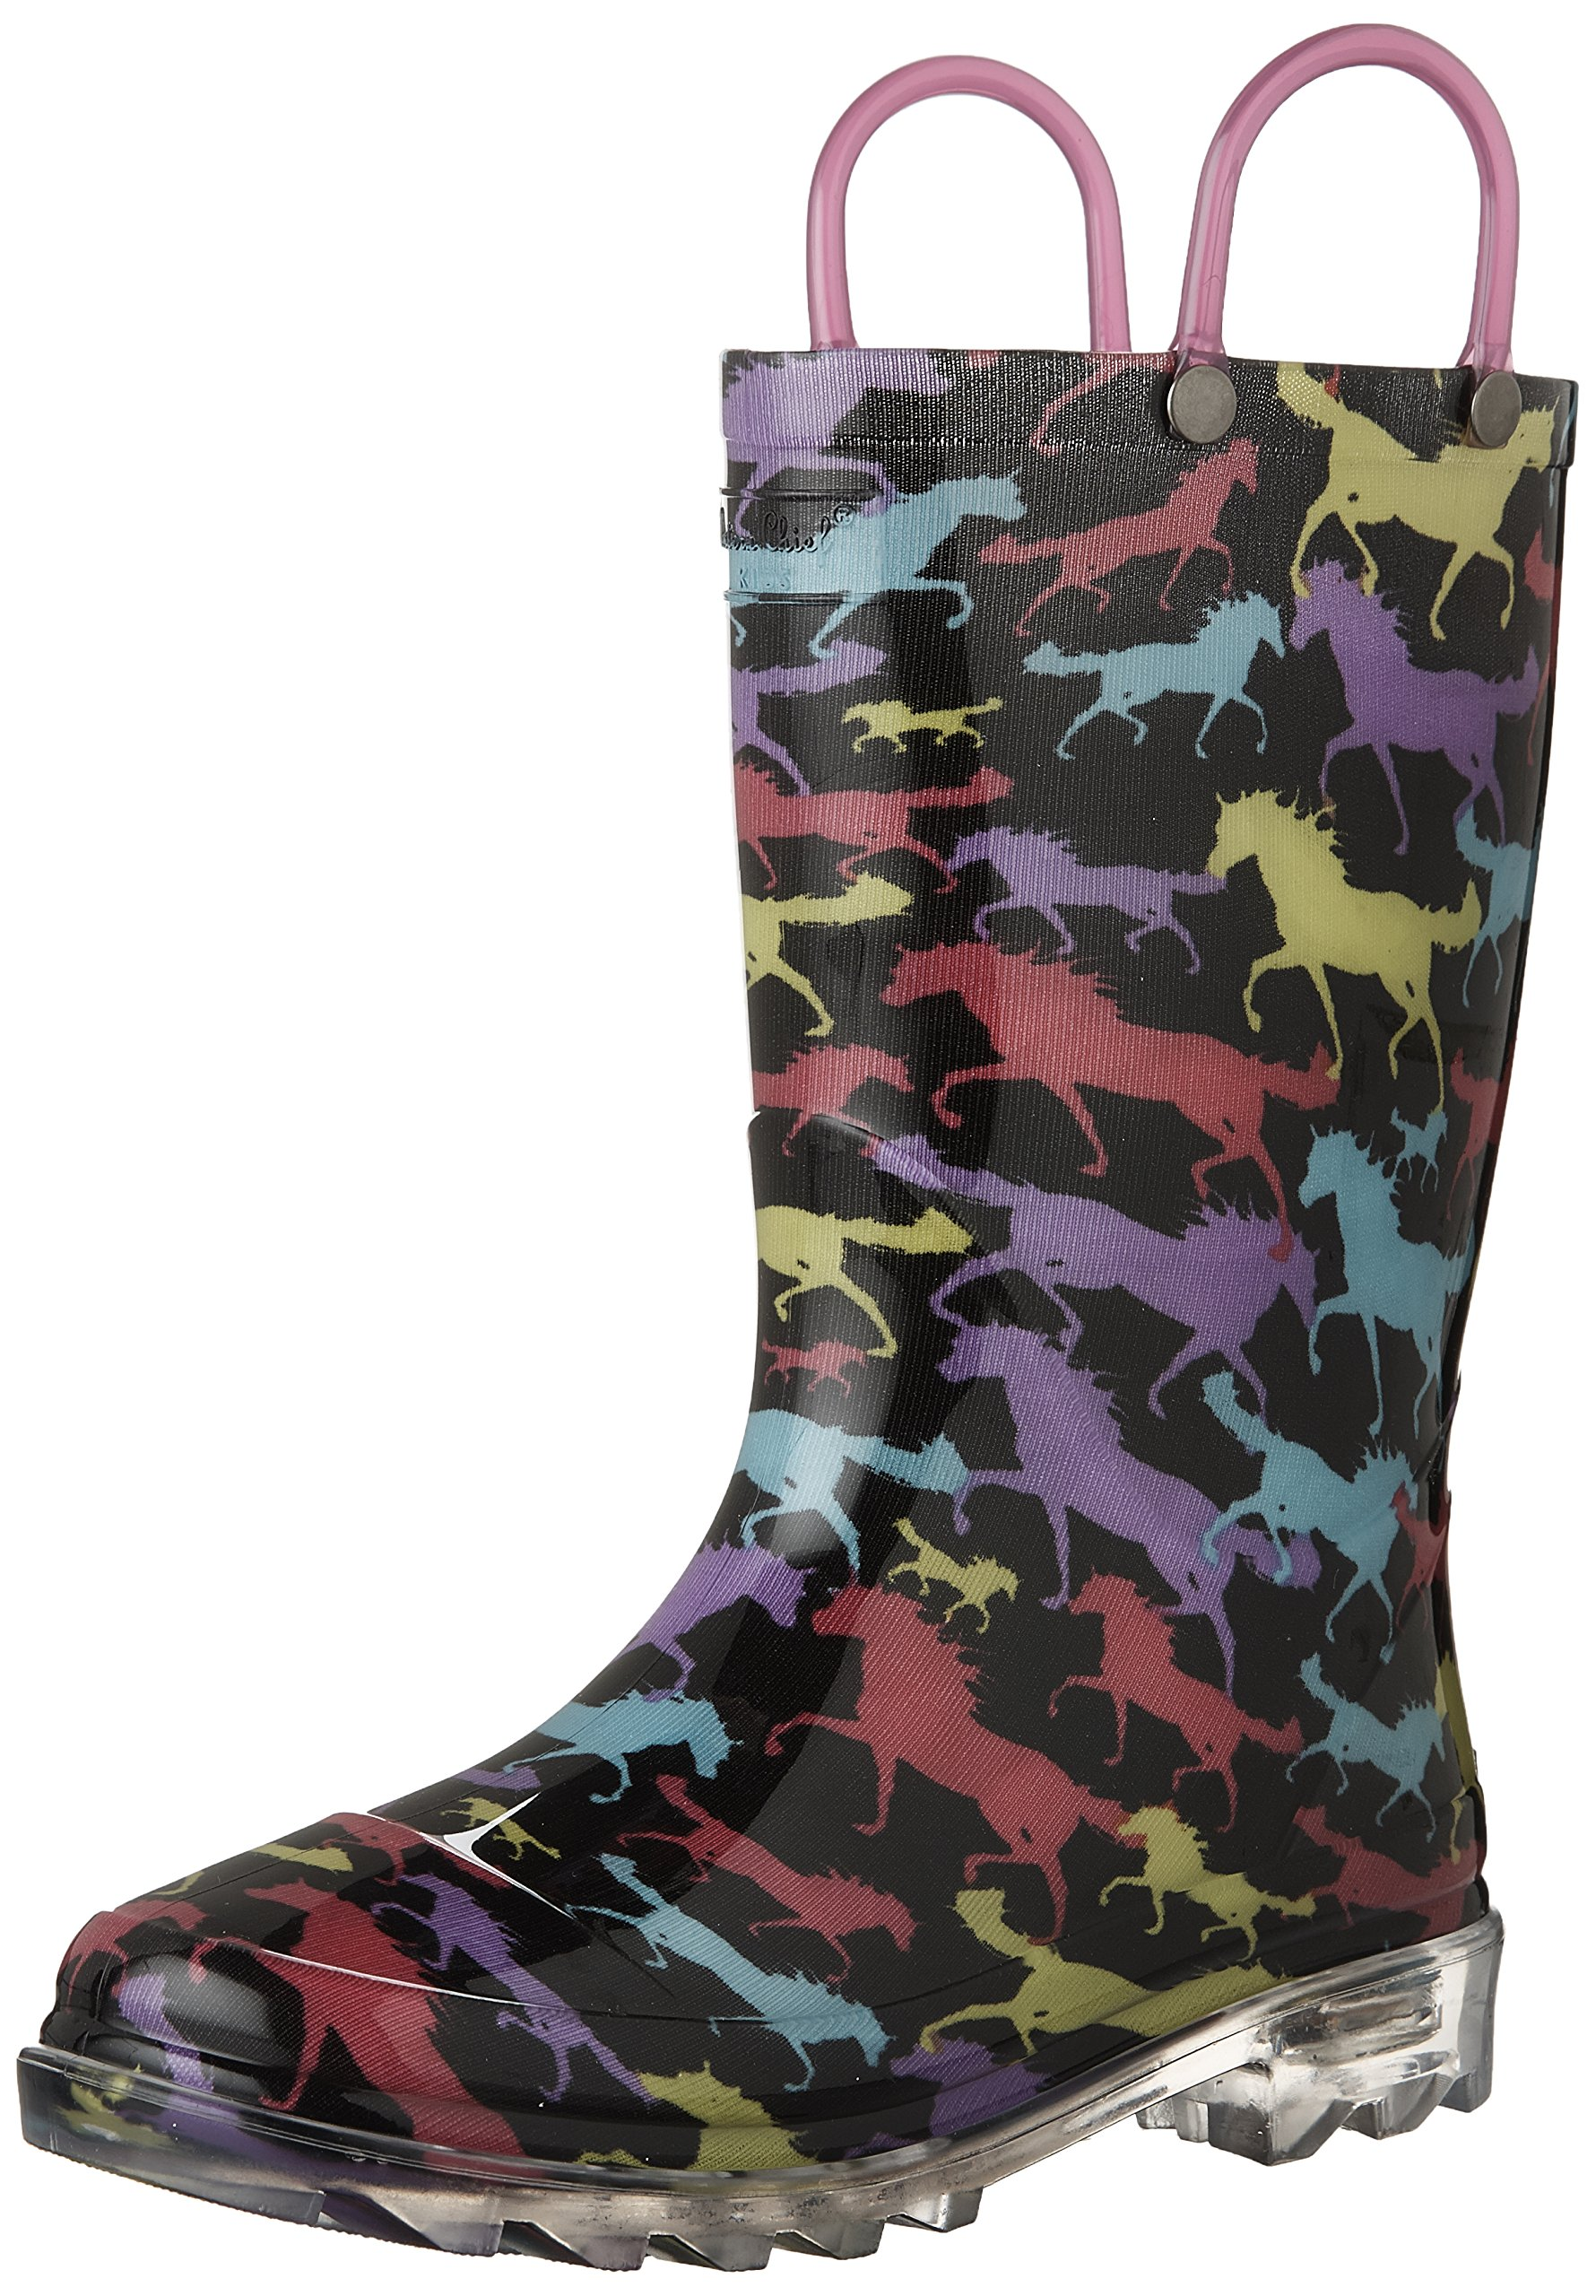 Western Chief Girls Waterproof Rain Boots That Light up with Each Step, Horse Dreams, 10 M US Toddler